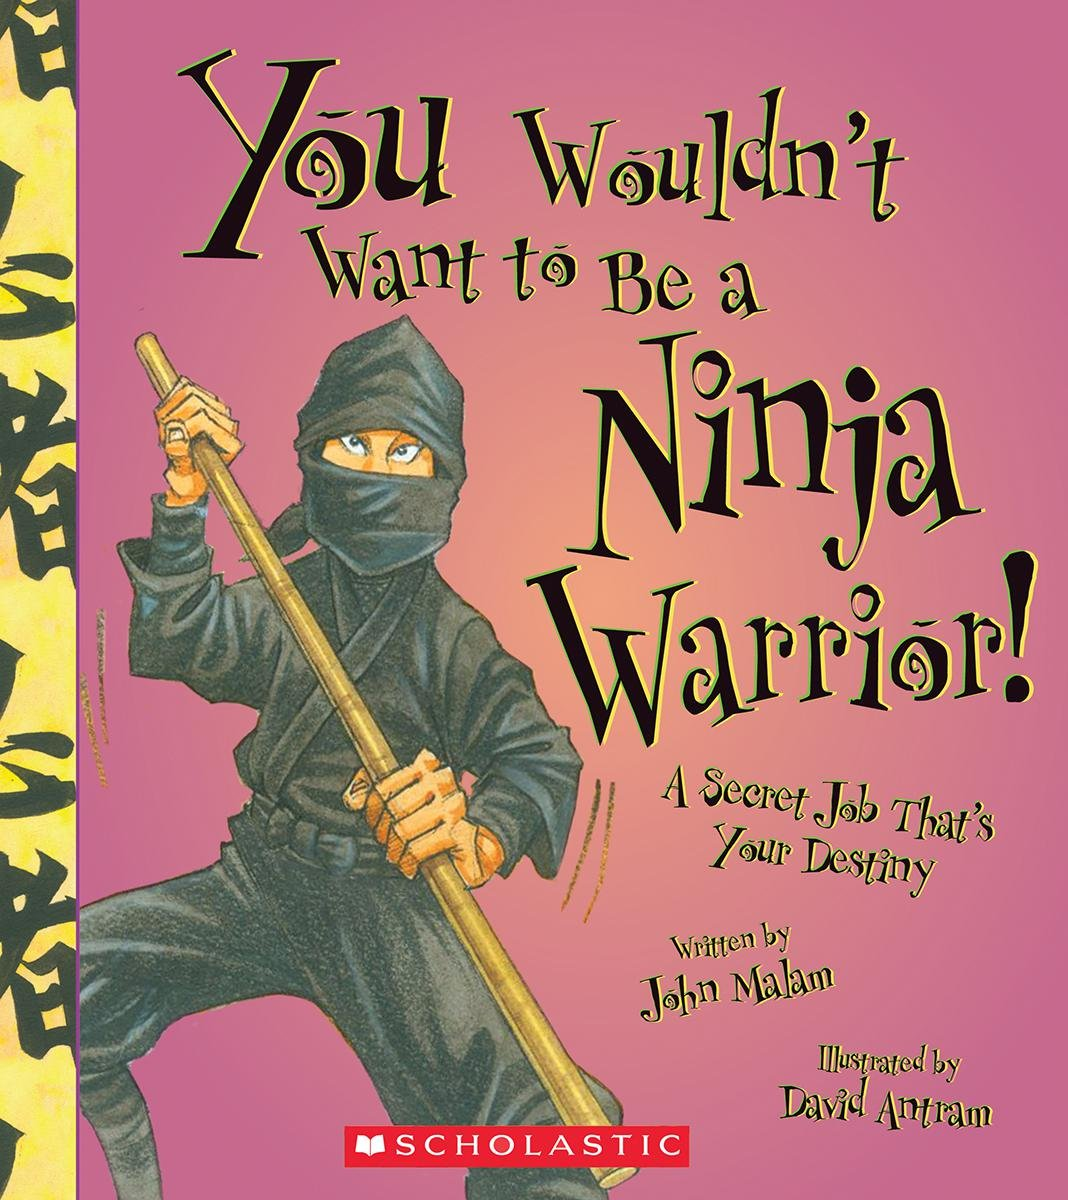 You Wouldn't Want to Be a Ninja Warrior!: A Secret Job That's Your Destiny